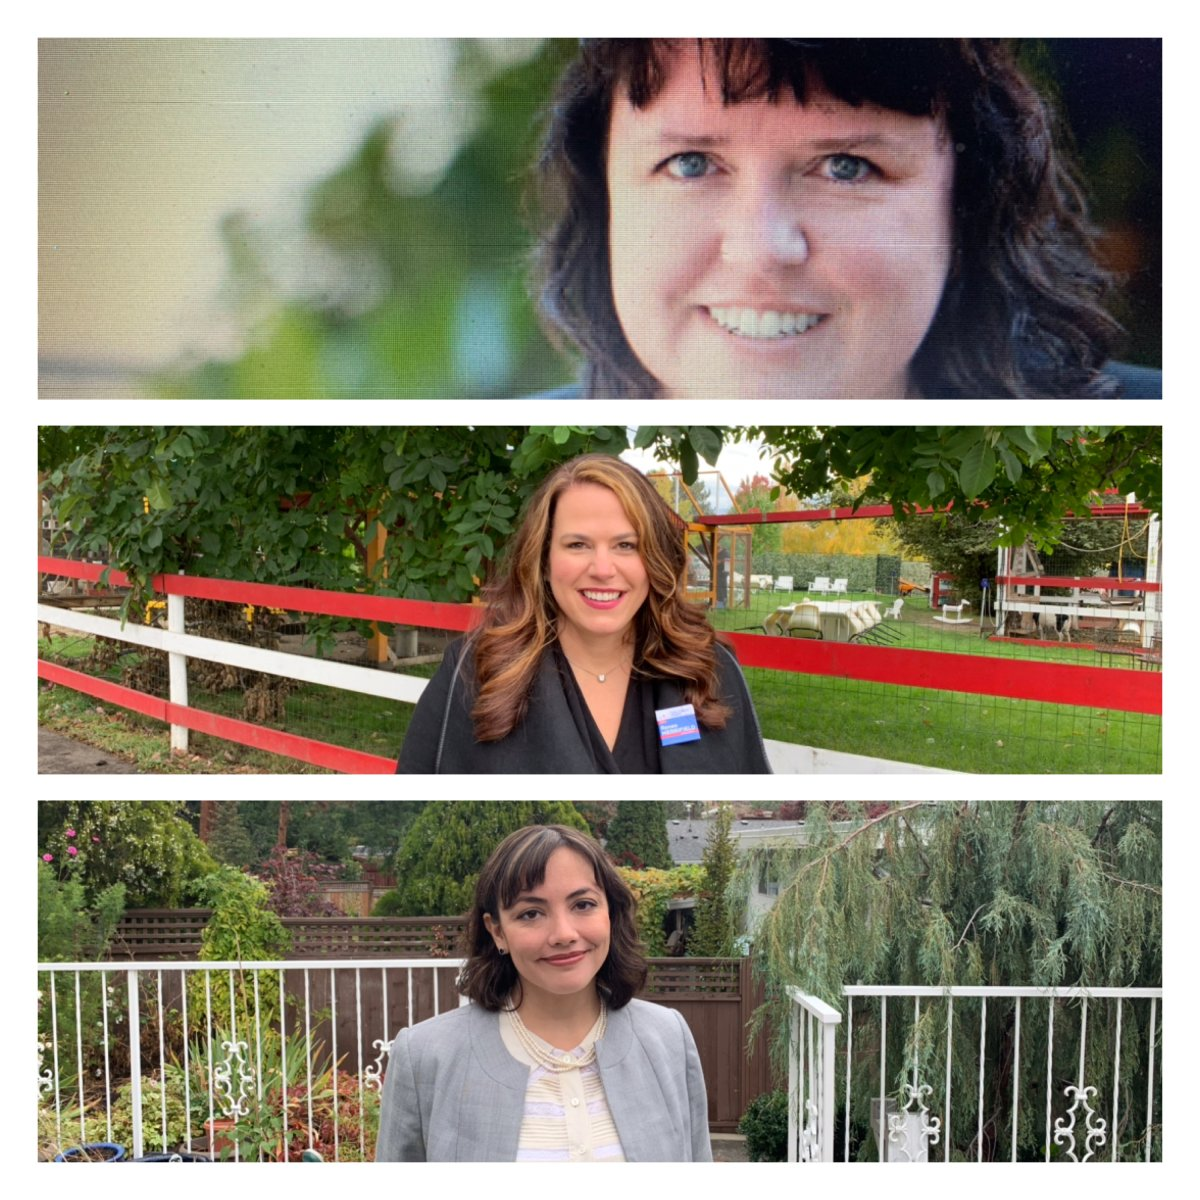 The three candidates running in the Kelowna Mission riding are, from top to bottom, Krystal Smith (NDP), Renee Merrifield (Liberal), and Amanda Poon (Greens).